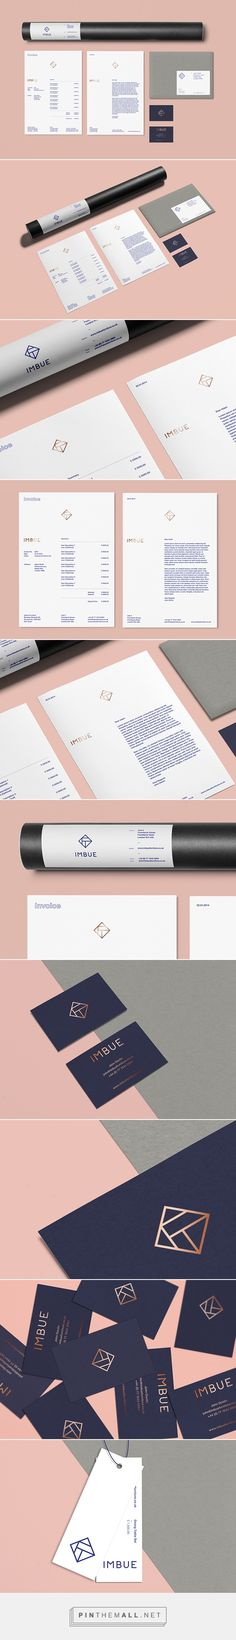 Imbue Furniture by Duane Dalton on Behance | Fivestar Branding – Design and Branding Agency & Inspiration Gallery